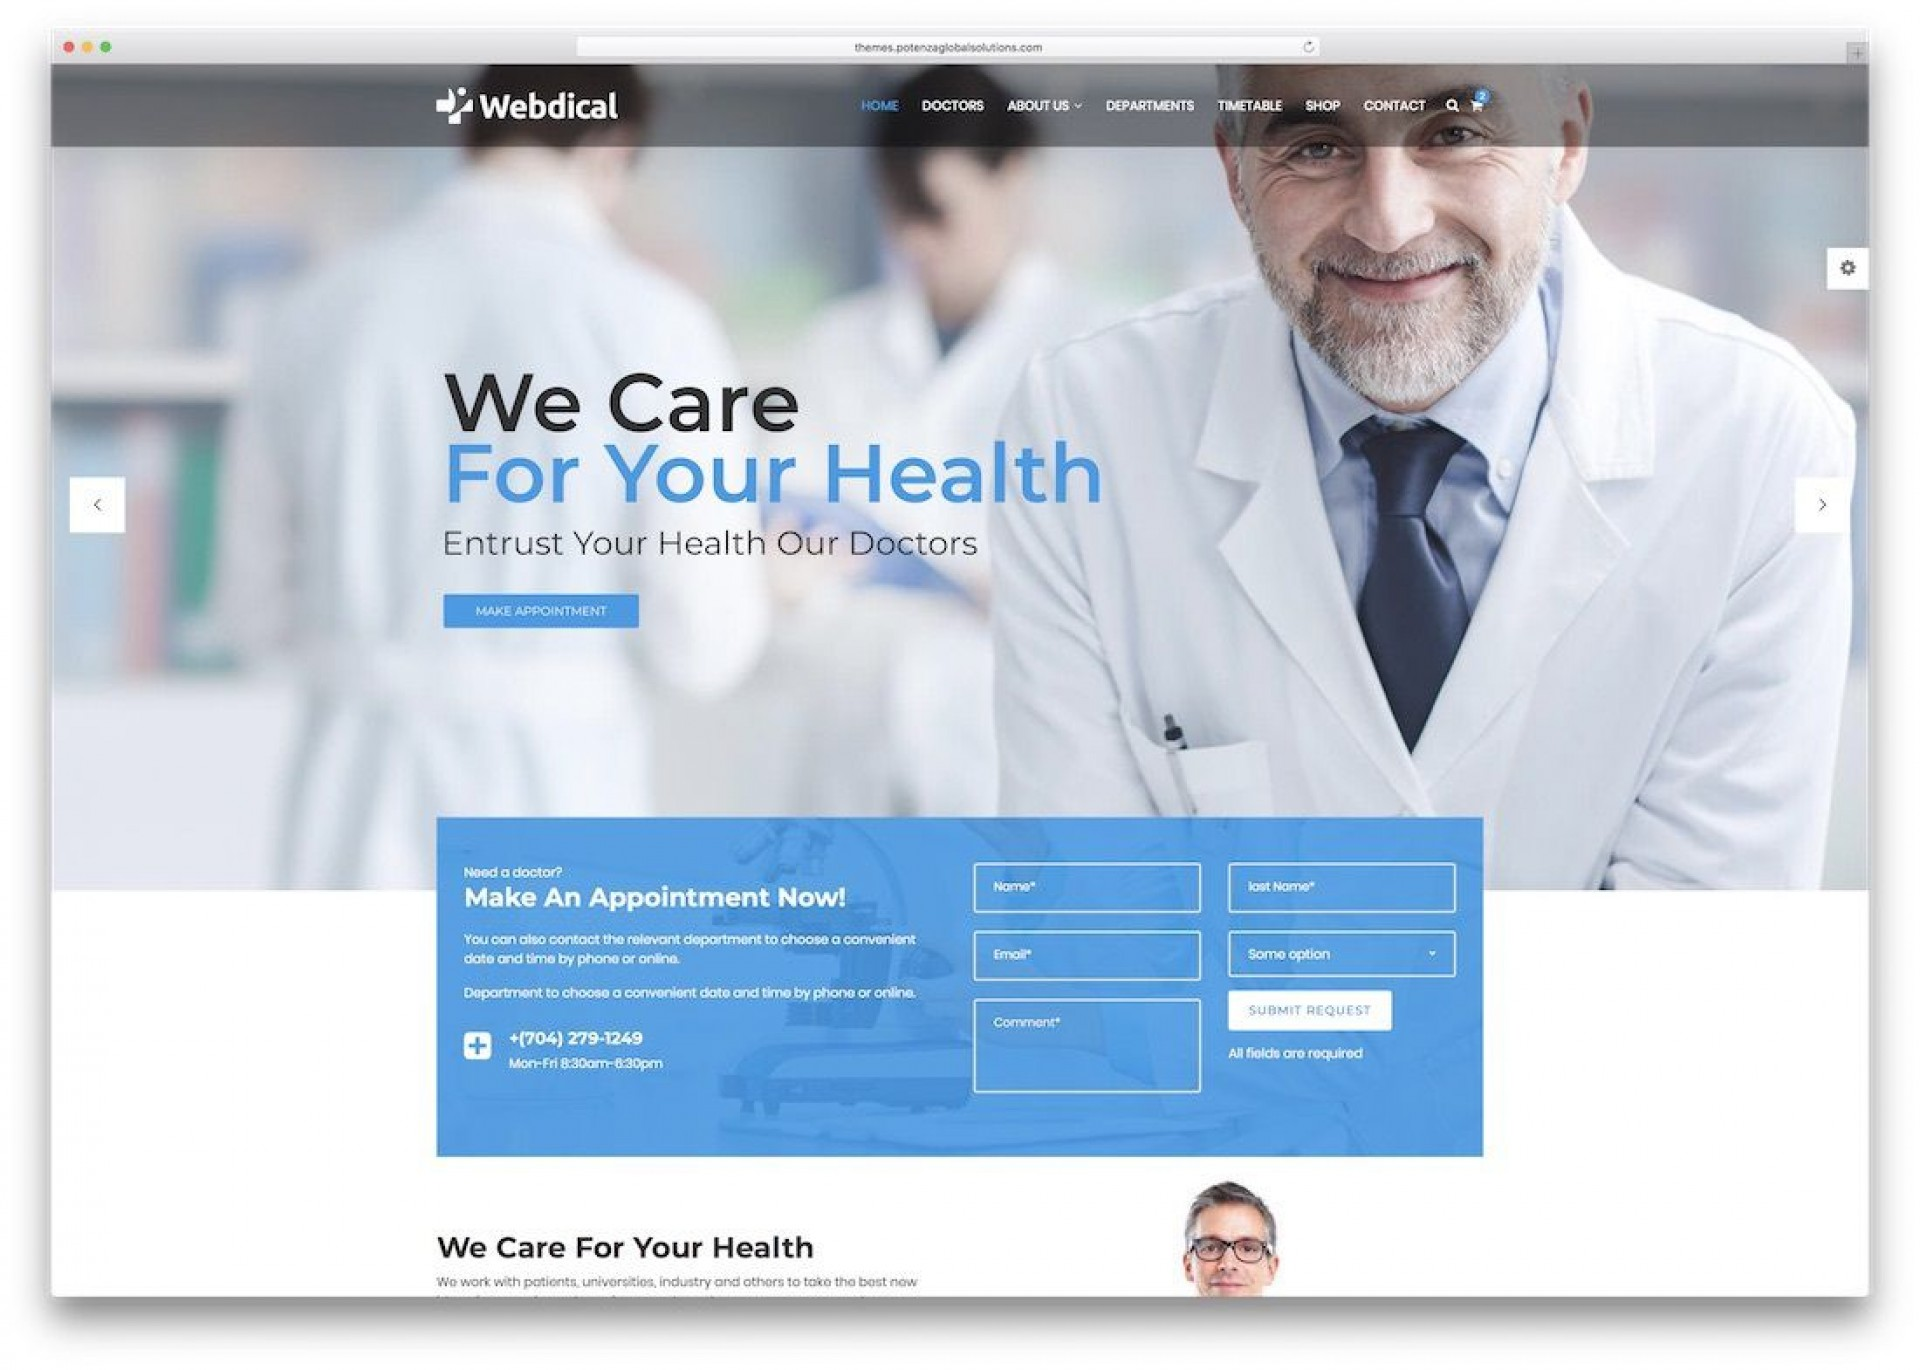 010 Impressive Free Website Template Download Html And Cs Jquery For Hospital Example 1920